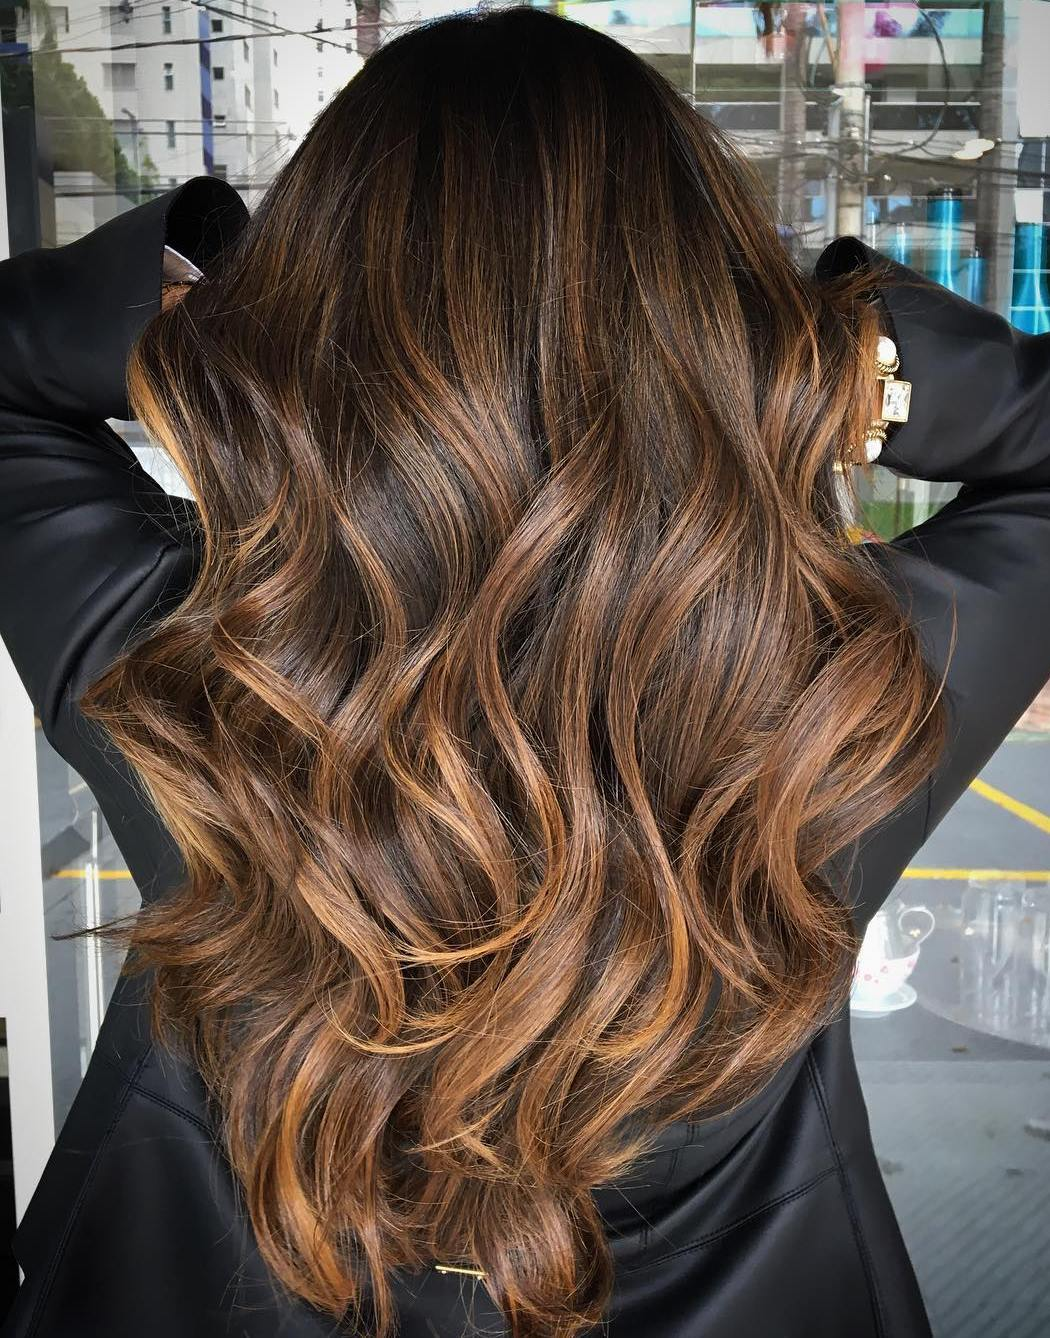 70 Balayage Hair Color Ideas with Blonde, Brown and